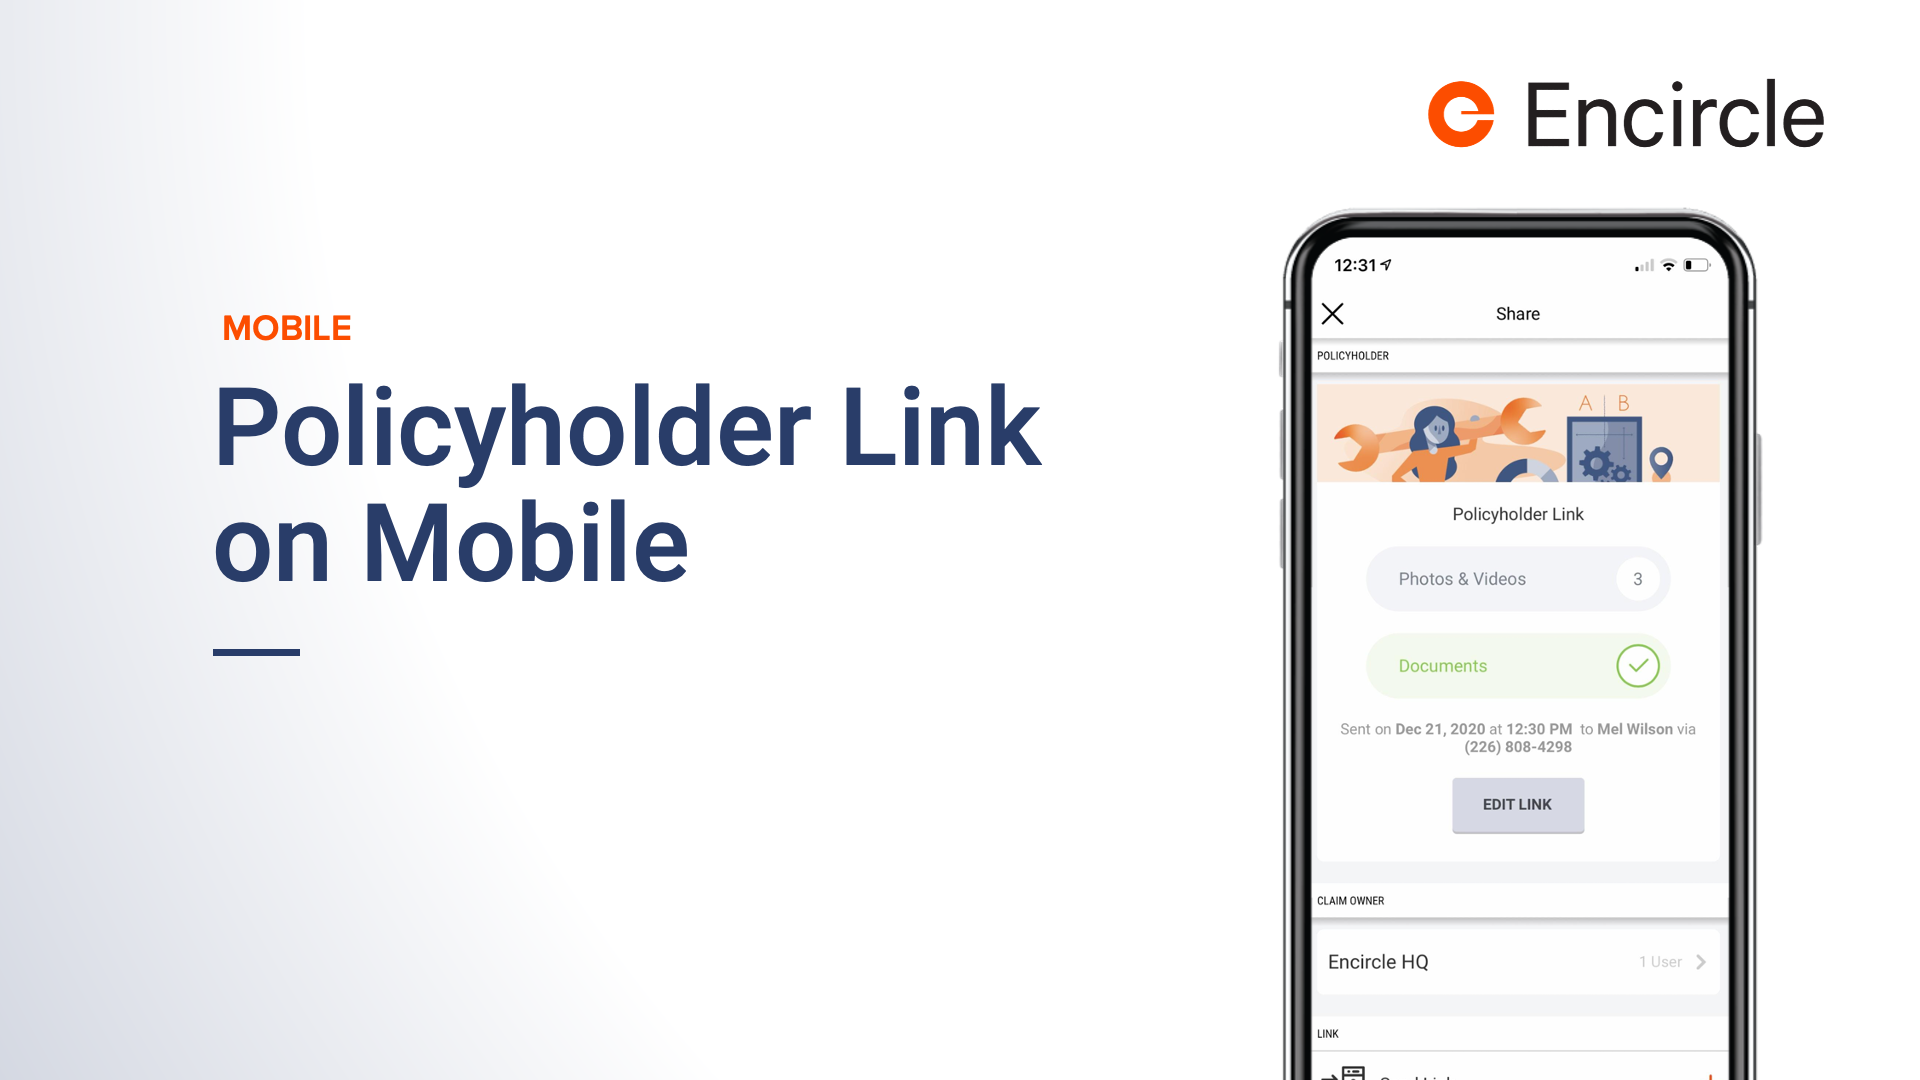 2-Policyholder-Link-on-Mobile-Whats-New-at-Encircle-Webinar